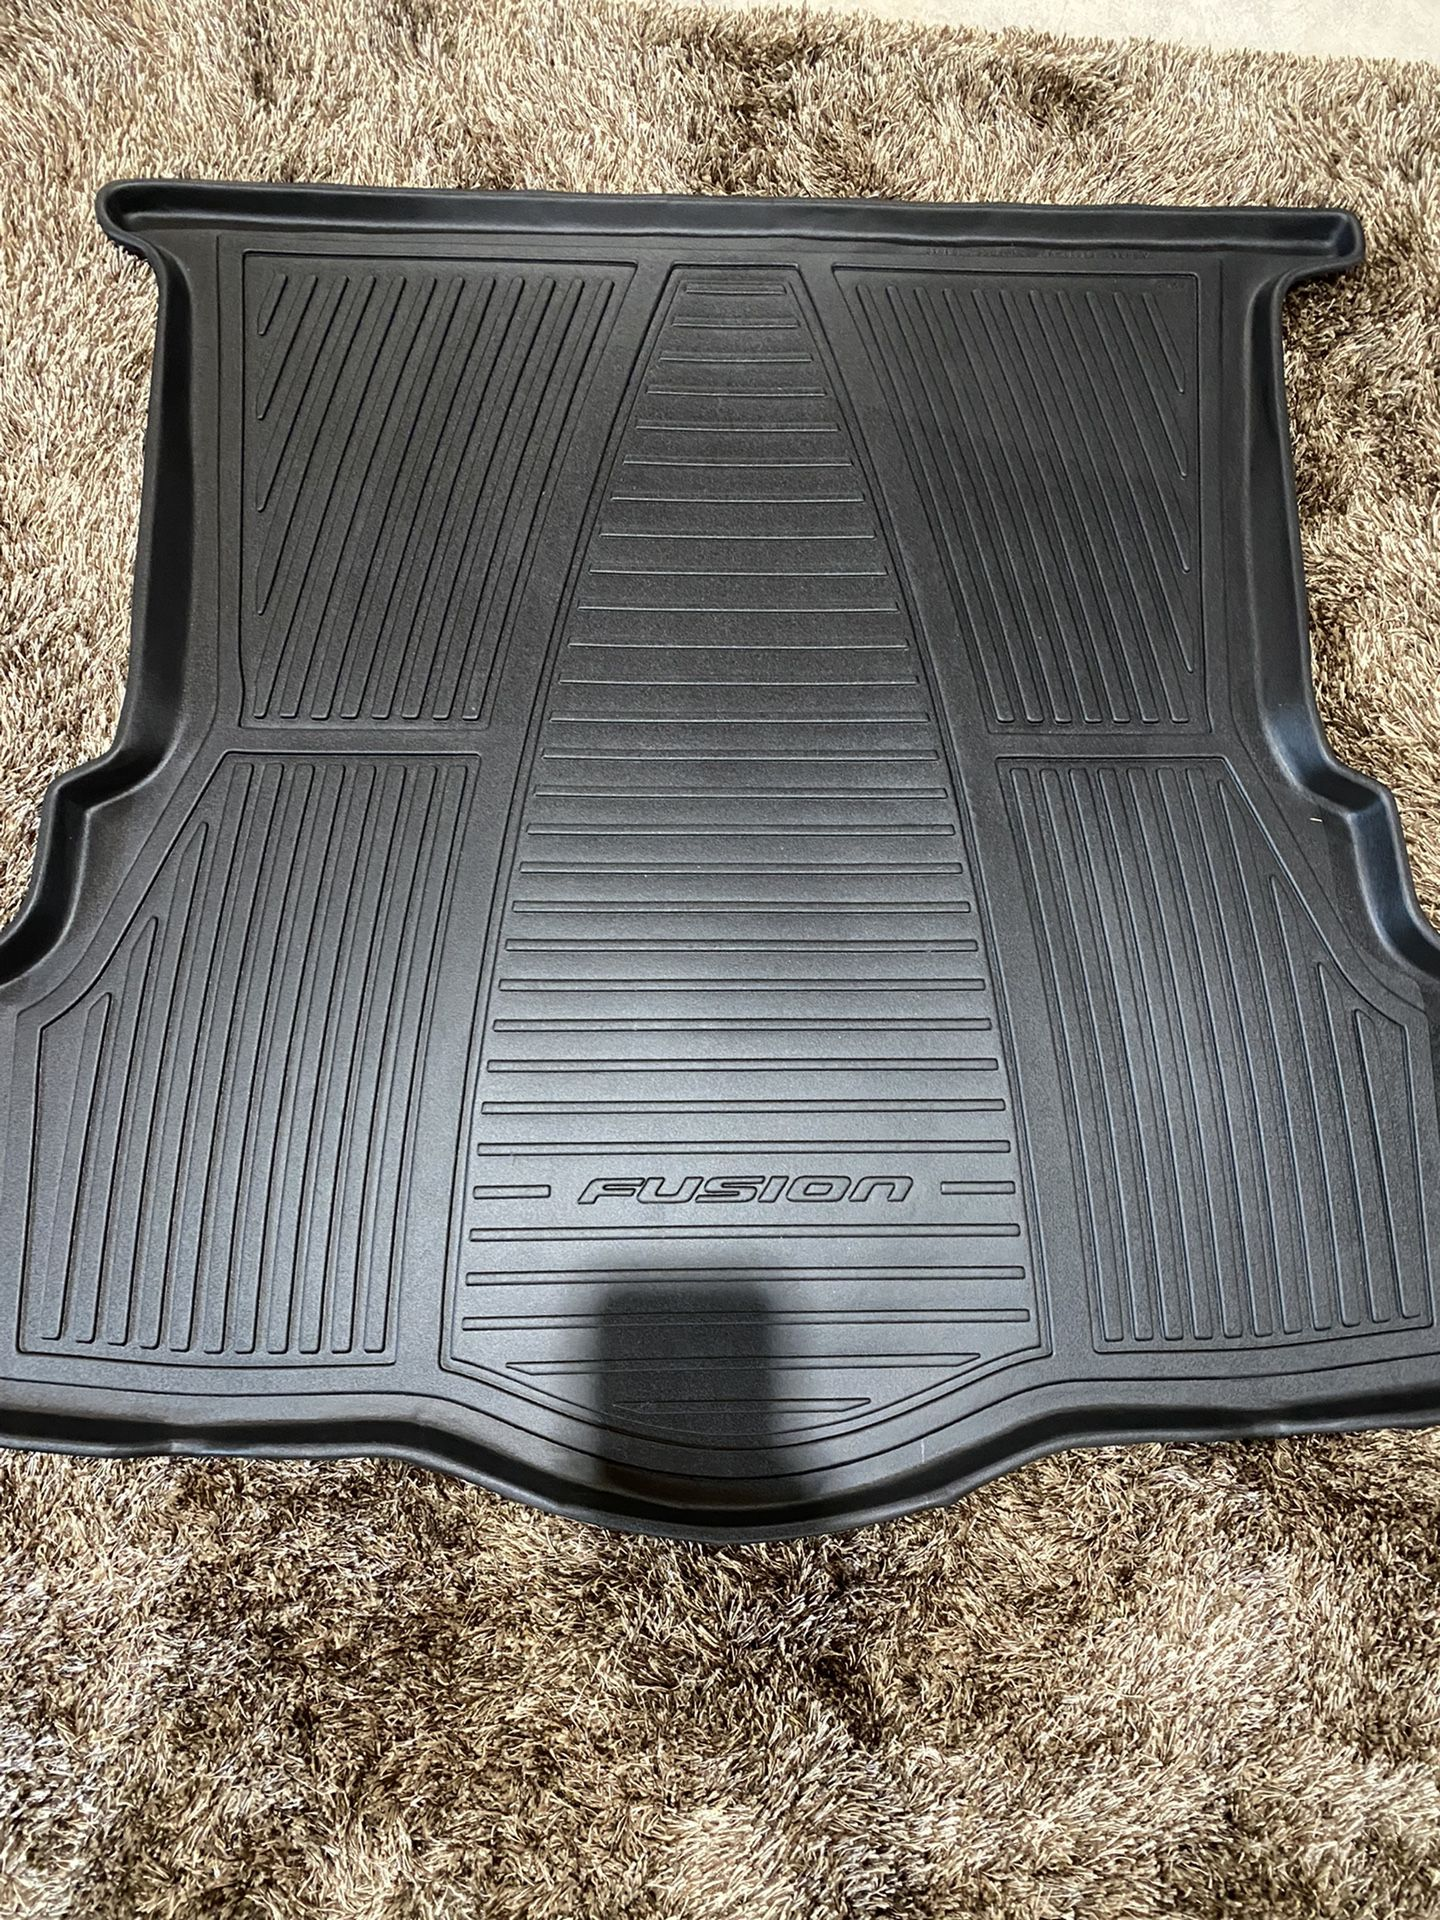 2013-2020 Ford Fusion OEM Trunk Cargo Protector Mat Liner (New)